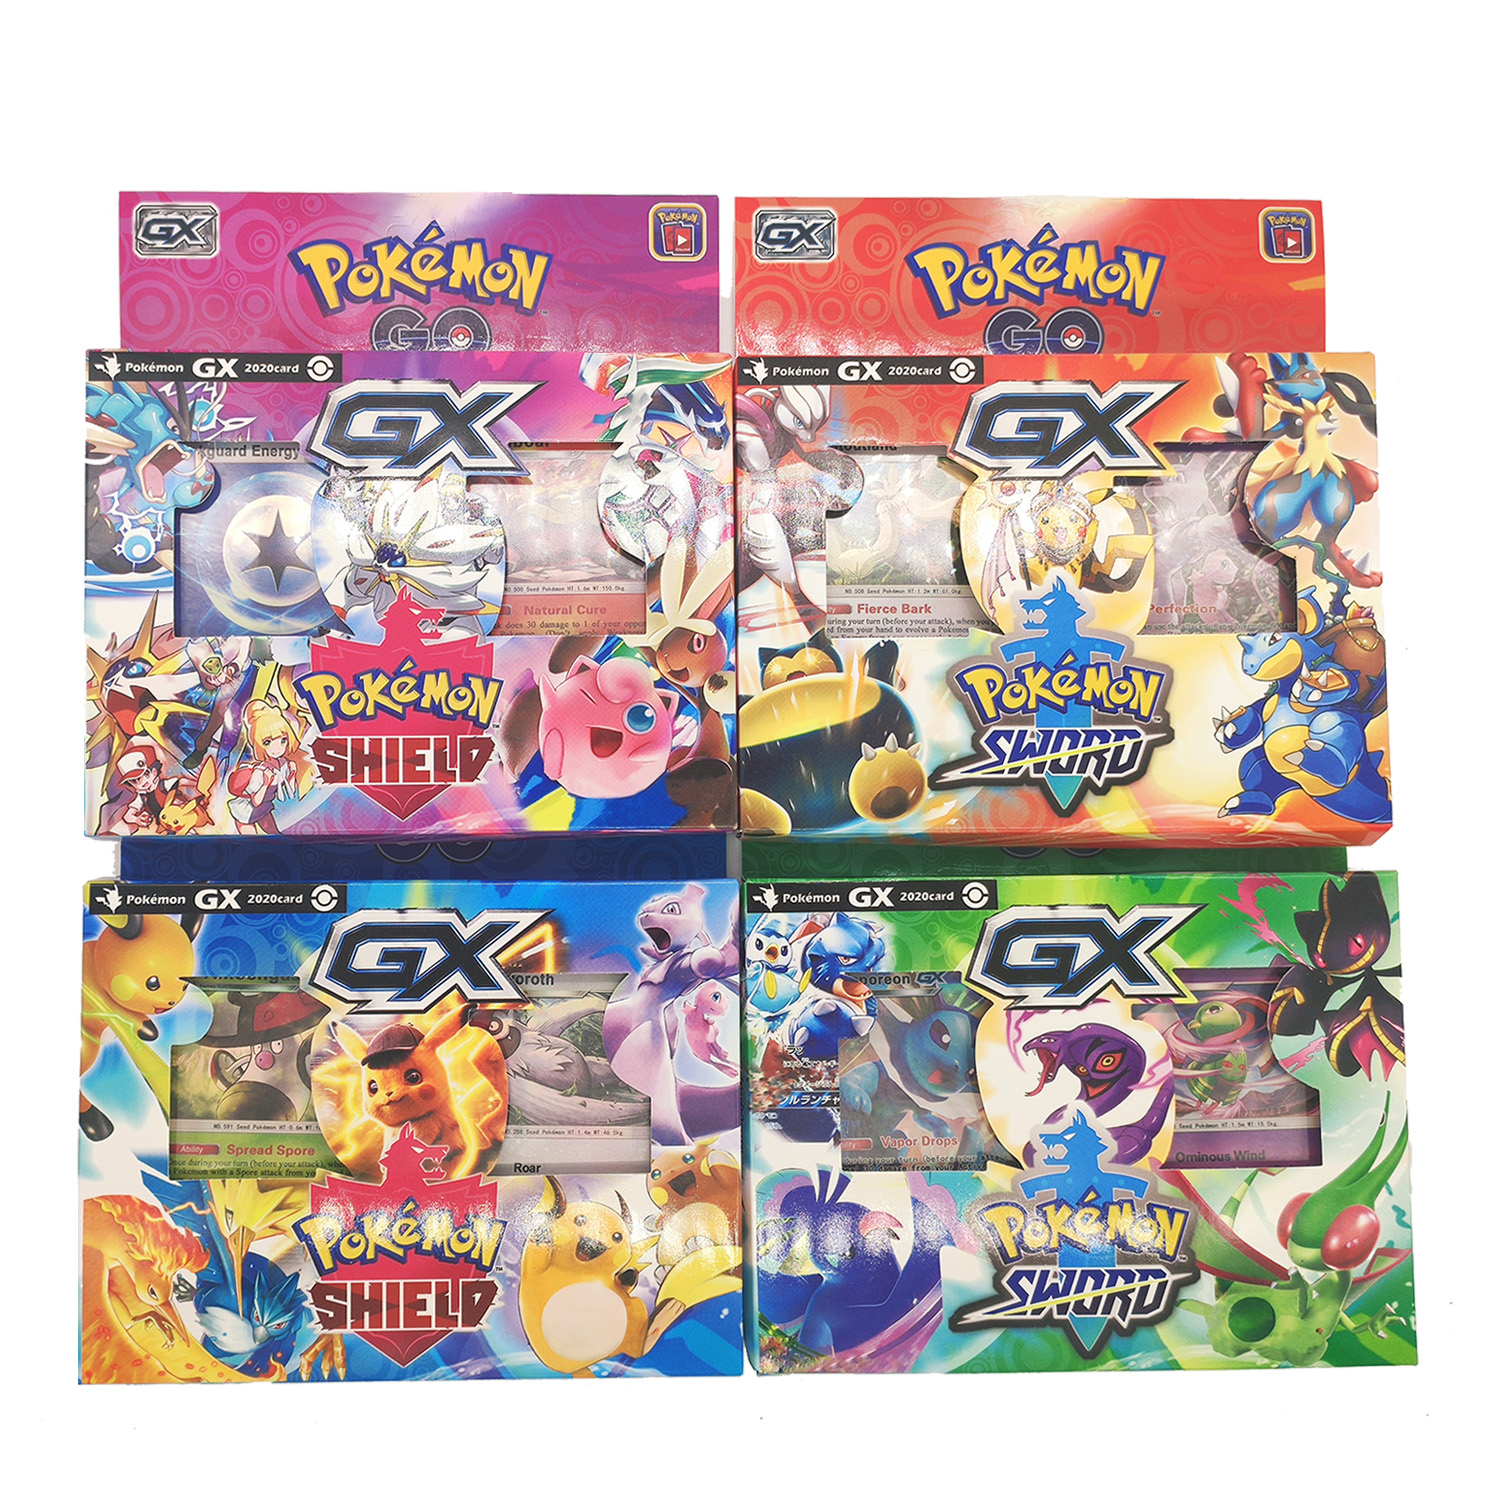 56pcs-set-font-b-pokemon-b-font-takara-tomy-battle-toys-hobbies-hobby-collectibles-game-collection-anime-cards-for-children